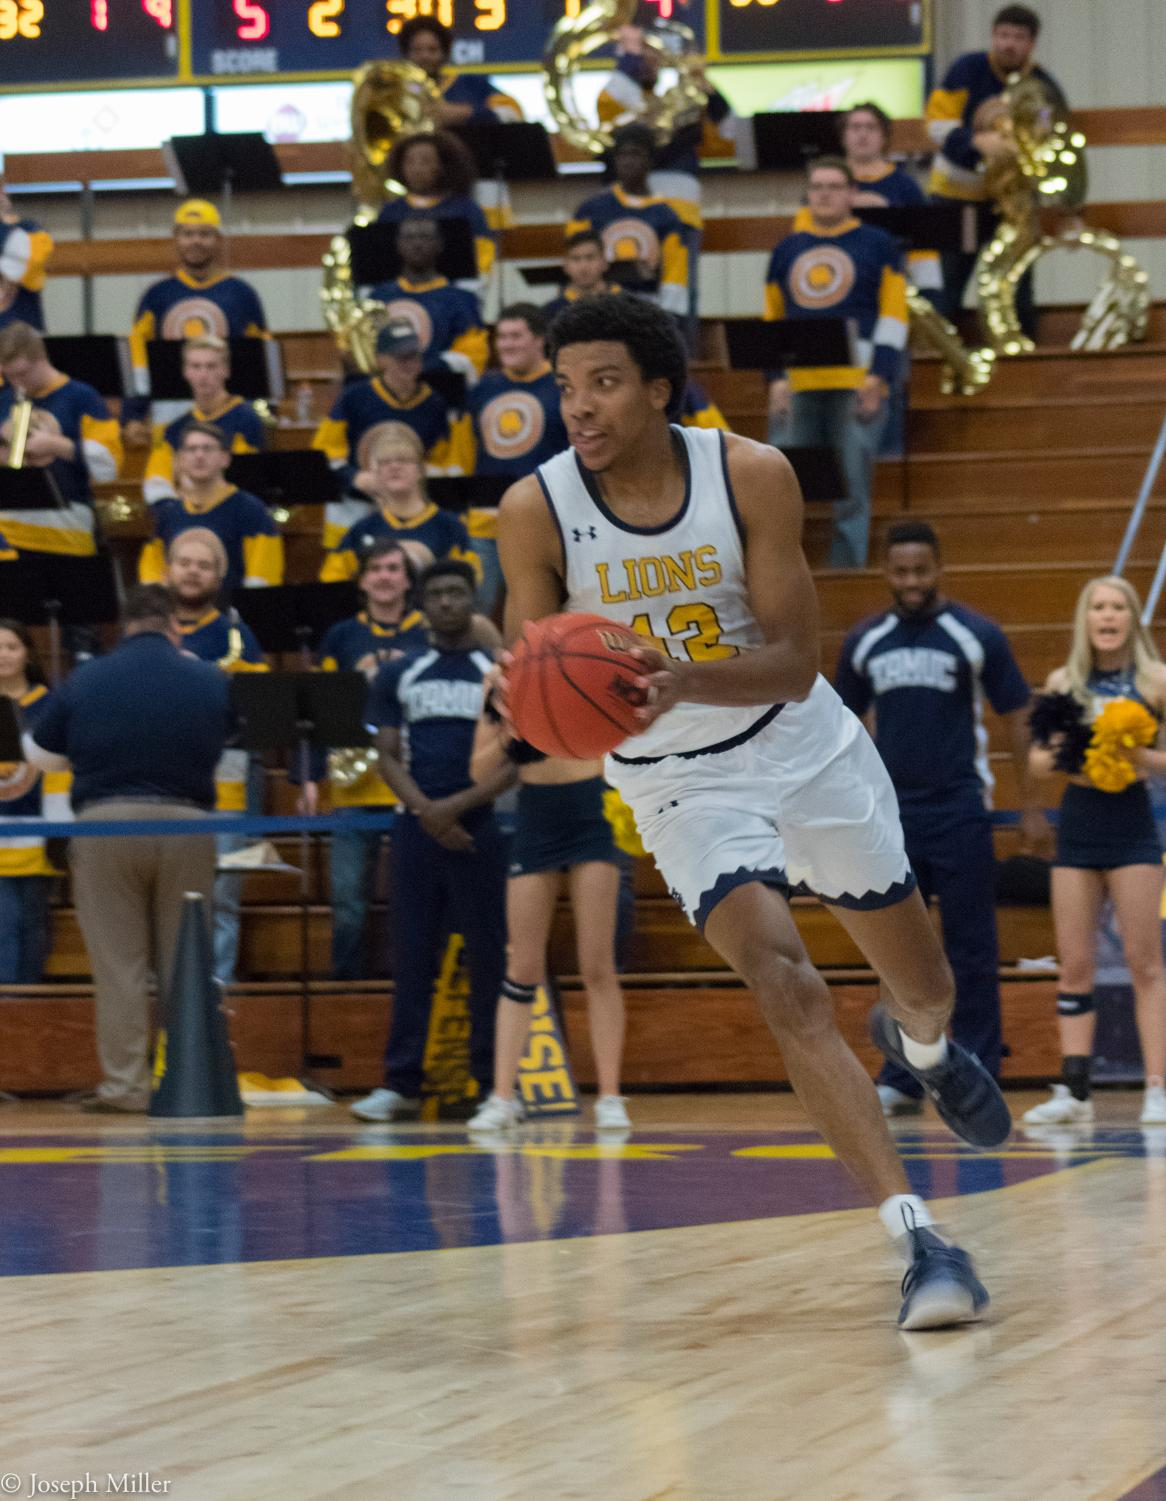 Wayne Stewart pushes the ball up the court